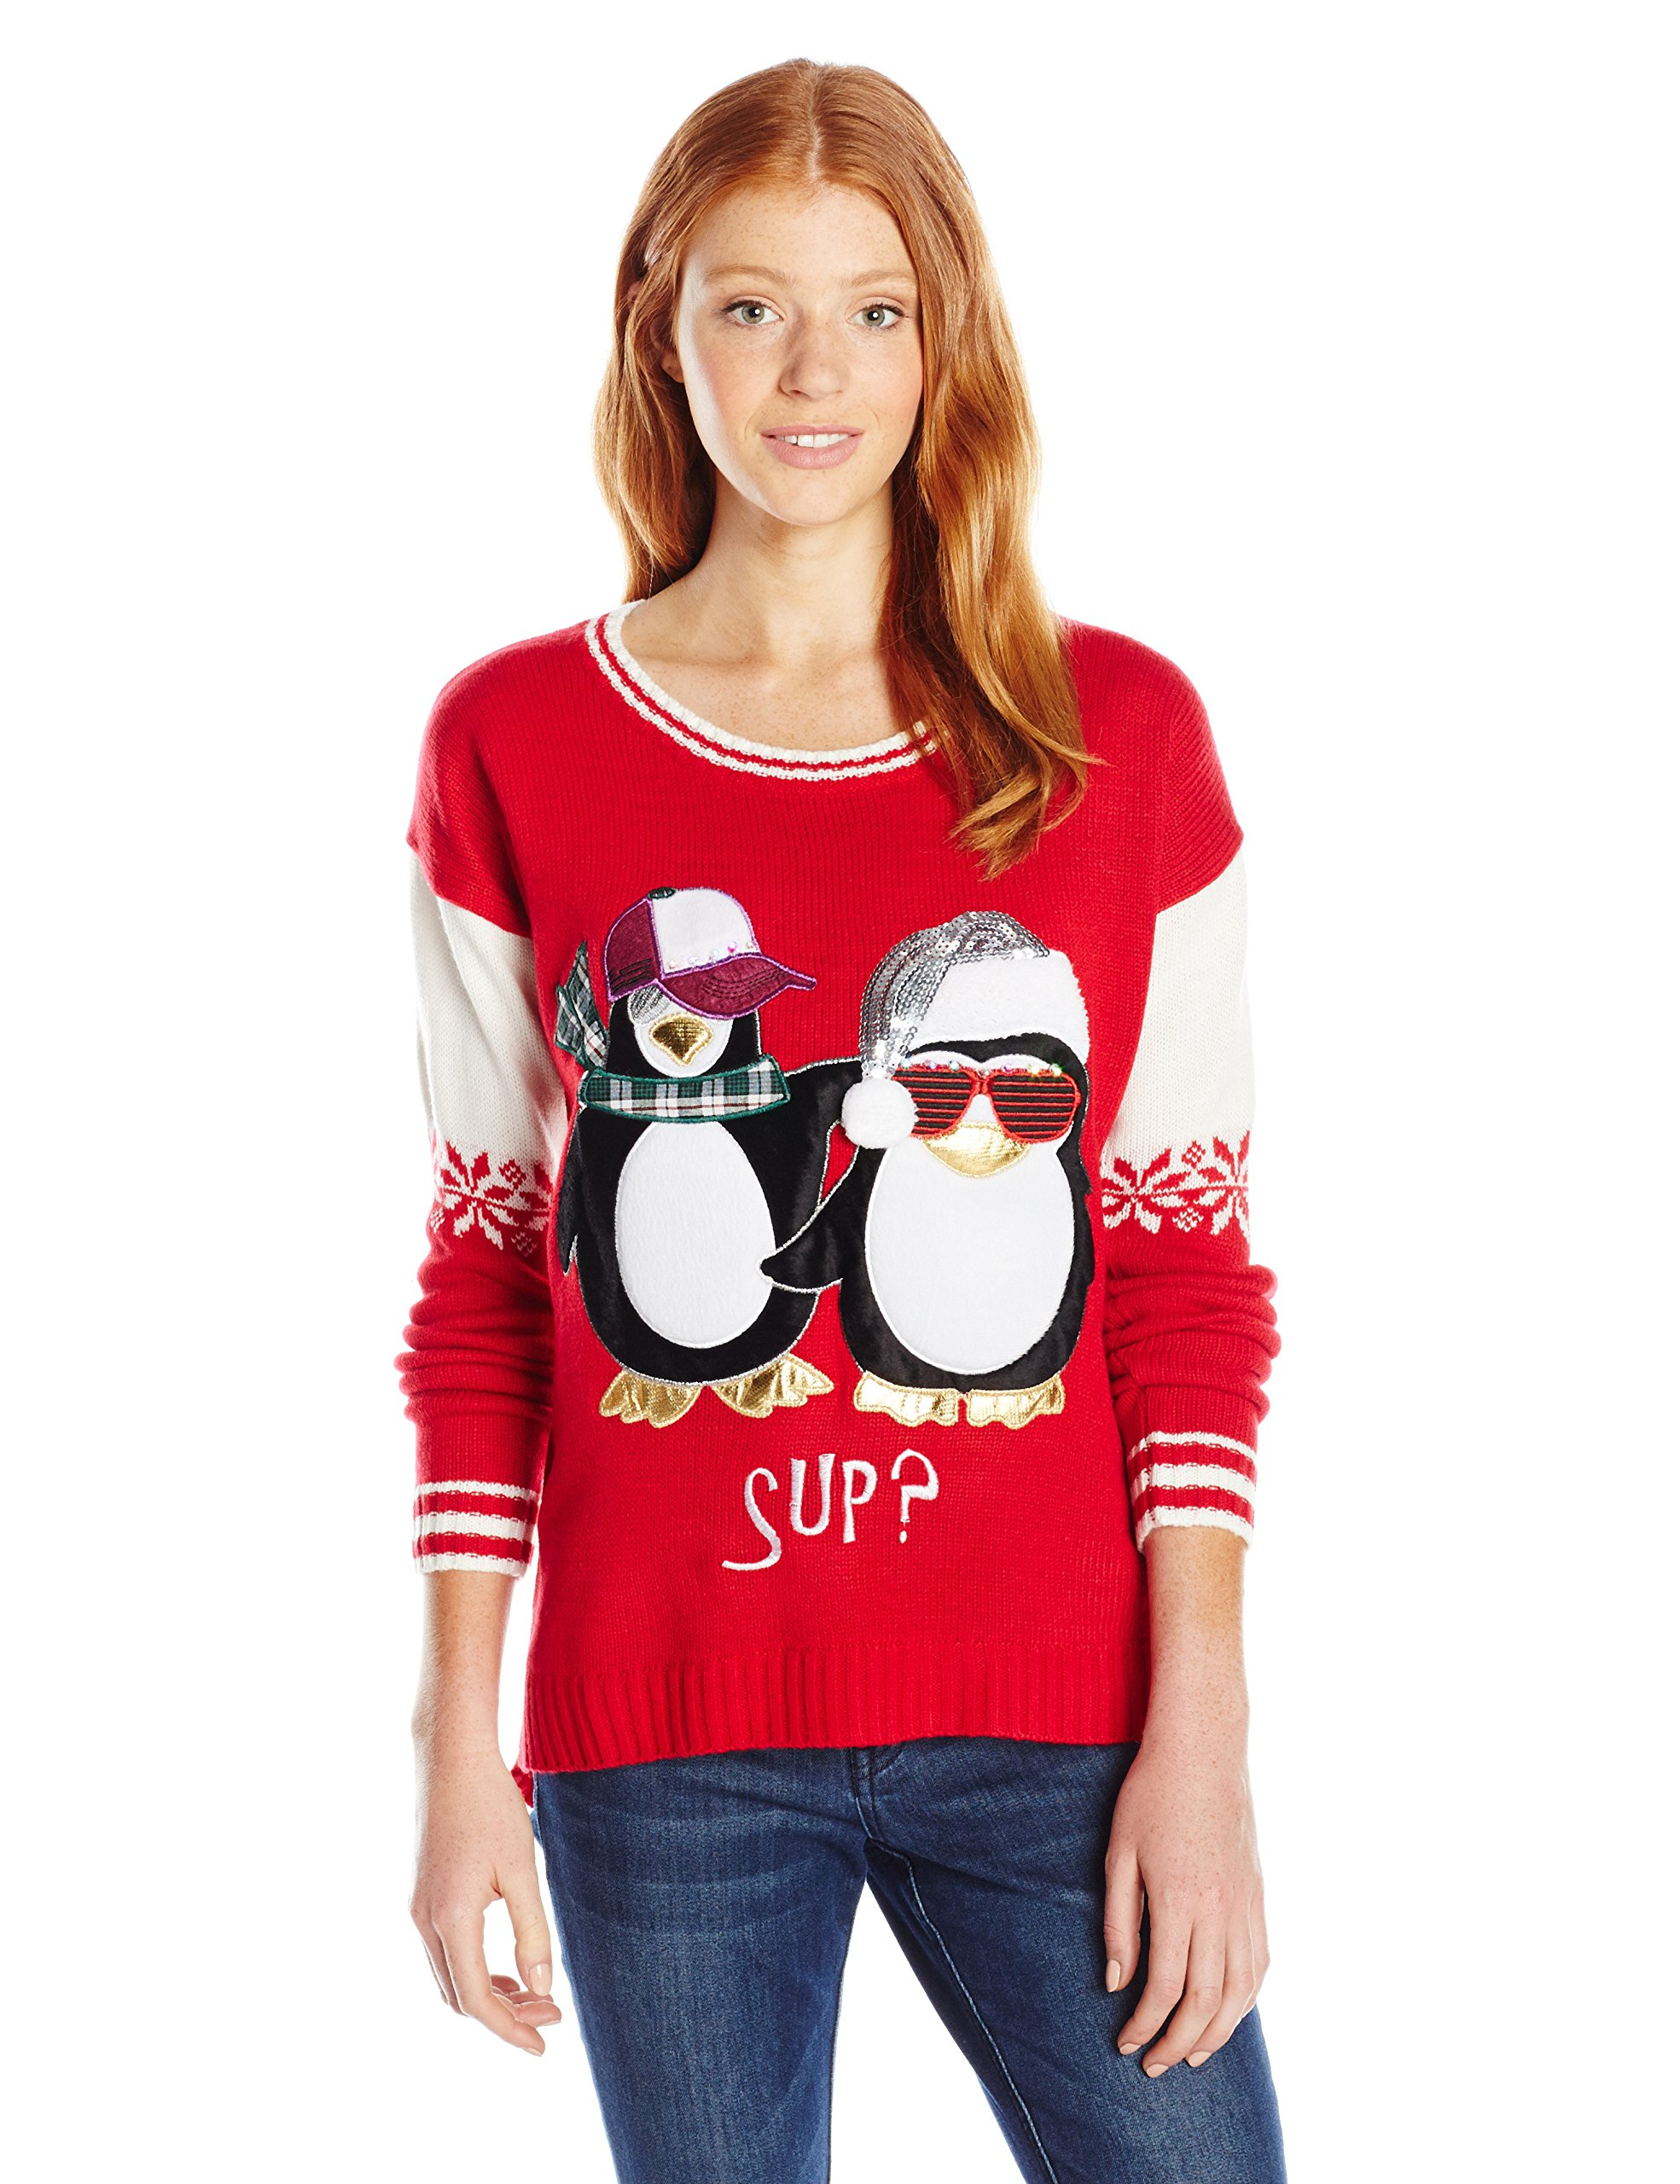 Blizzard Bay Juniors Sup Penguin Light up Pullover Sweater, Christmas Red, L